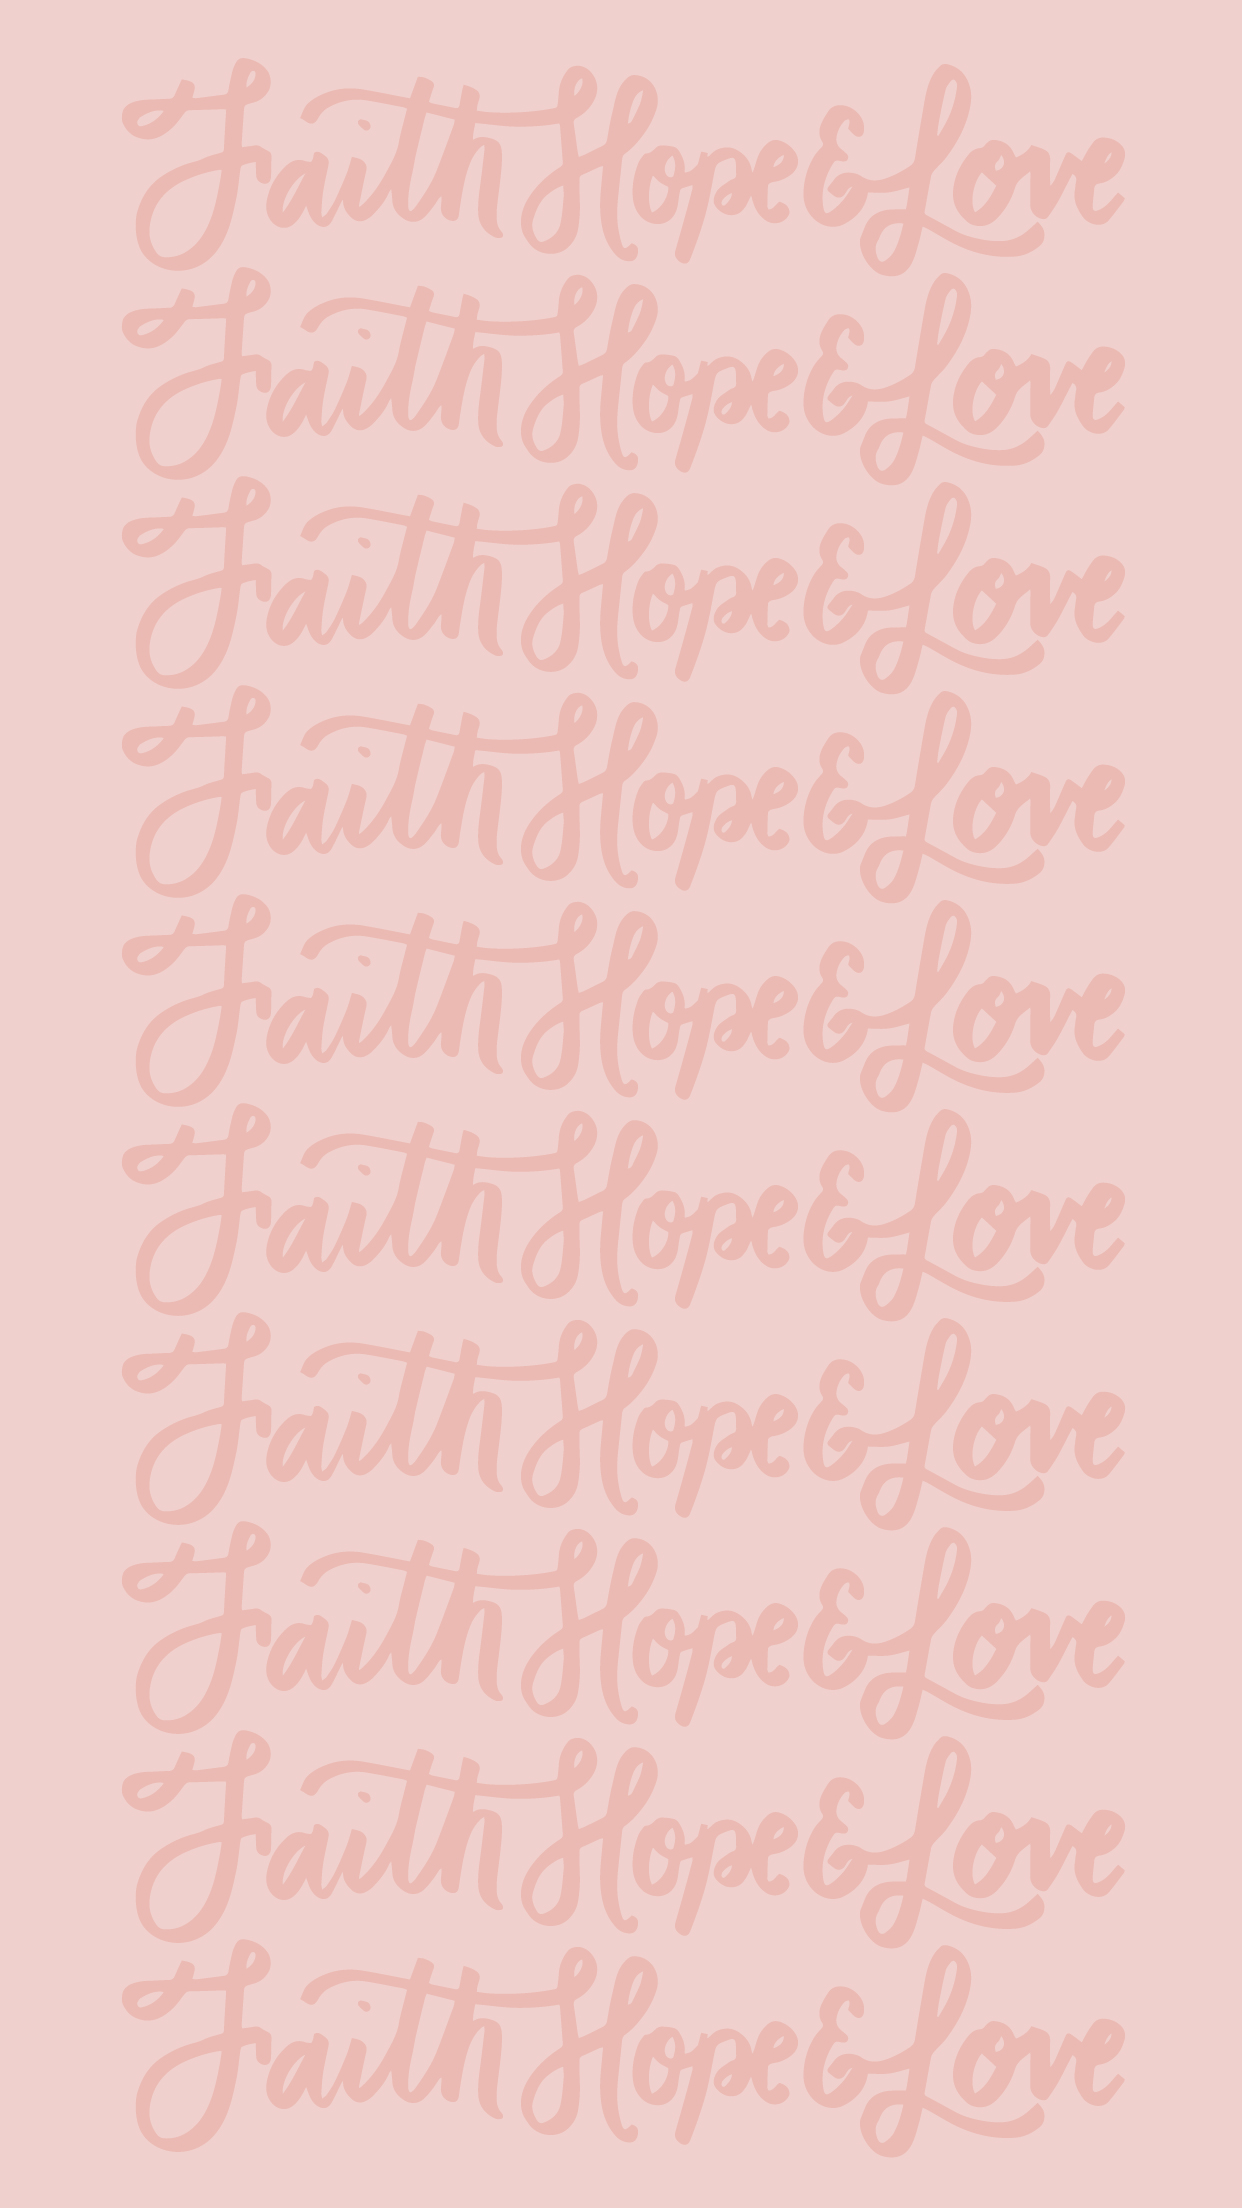 februarywallpapers_faithhopelove_mobile